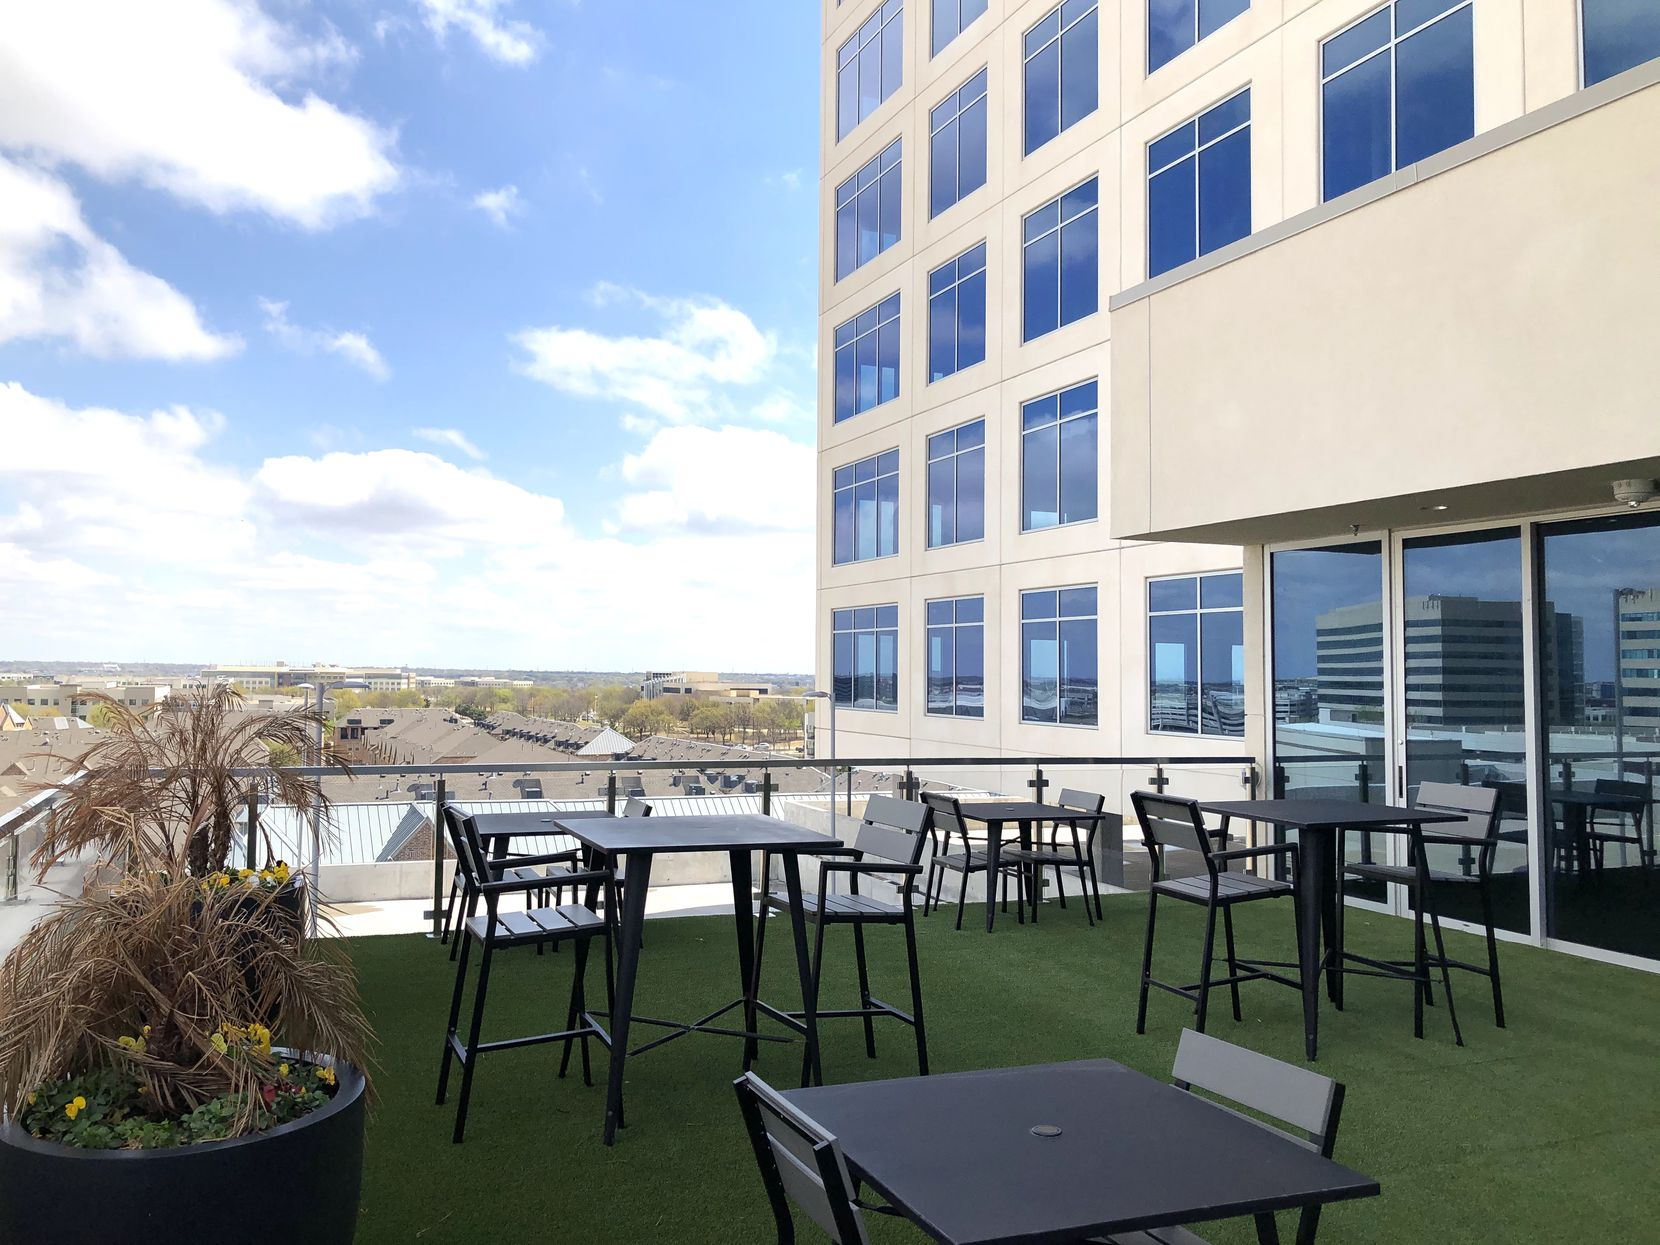 The new Headquarters II building in Plano has a seventh floor tenant lounge and patio.